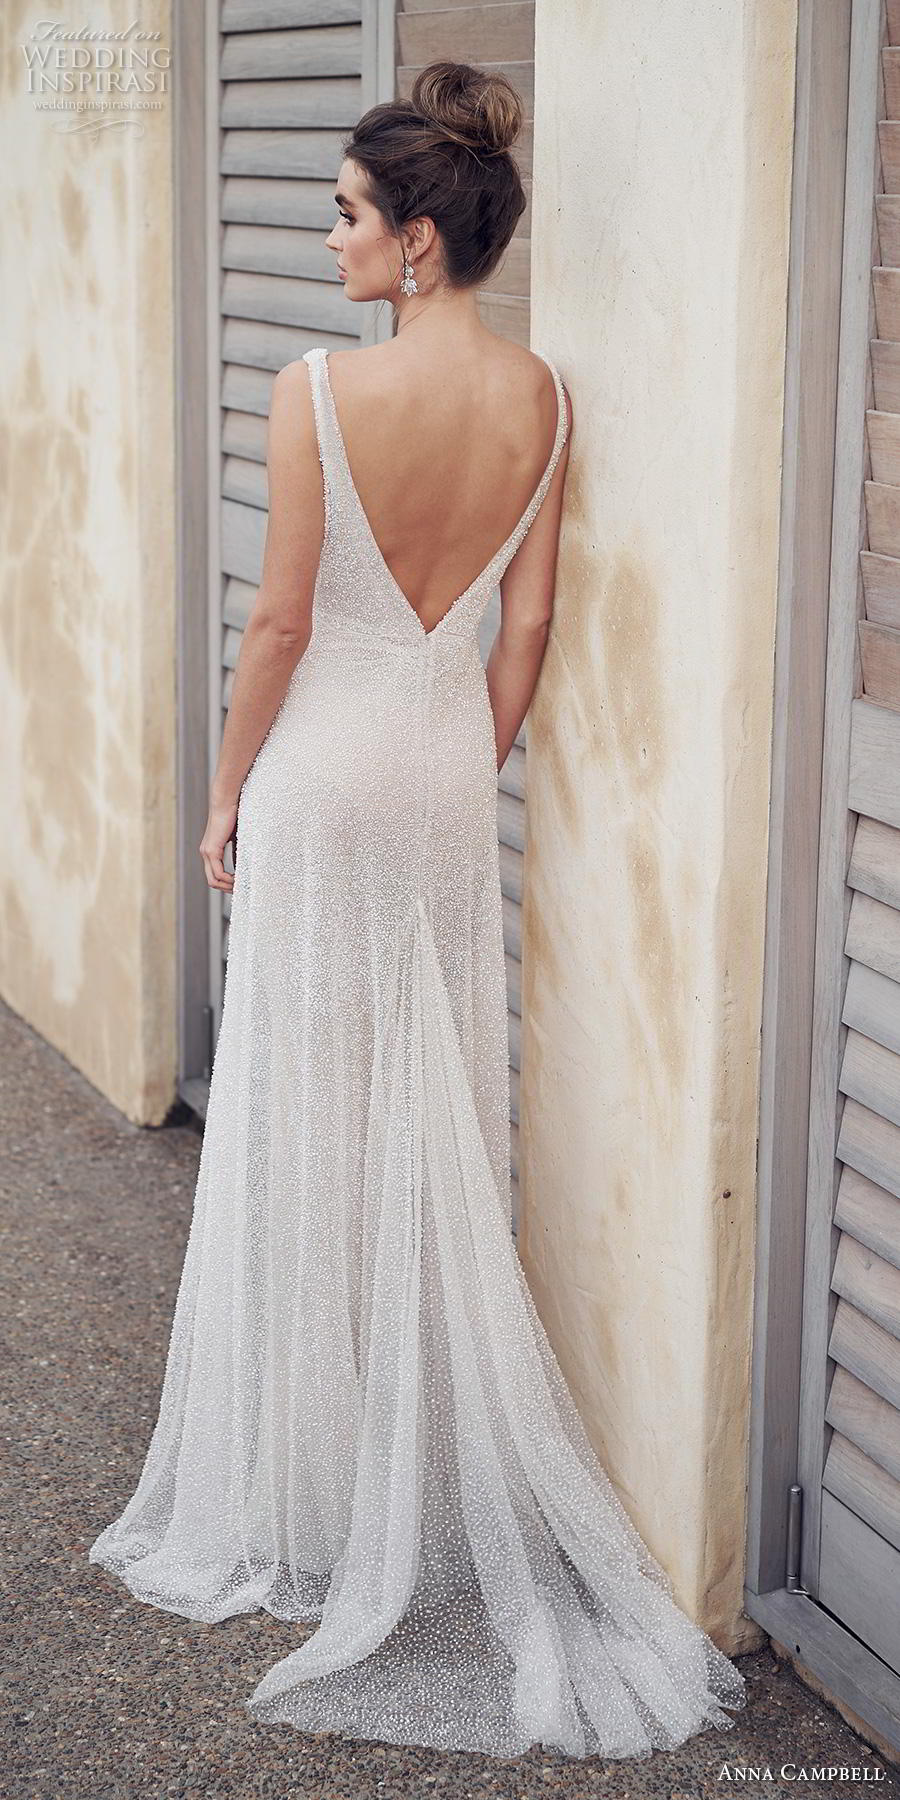 anna campbell 2019 bridal sleeveless v neck full embellishment gltizy simple elegant modified a line wedding dress backless v back sweep train (10) bv